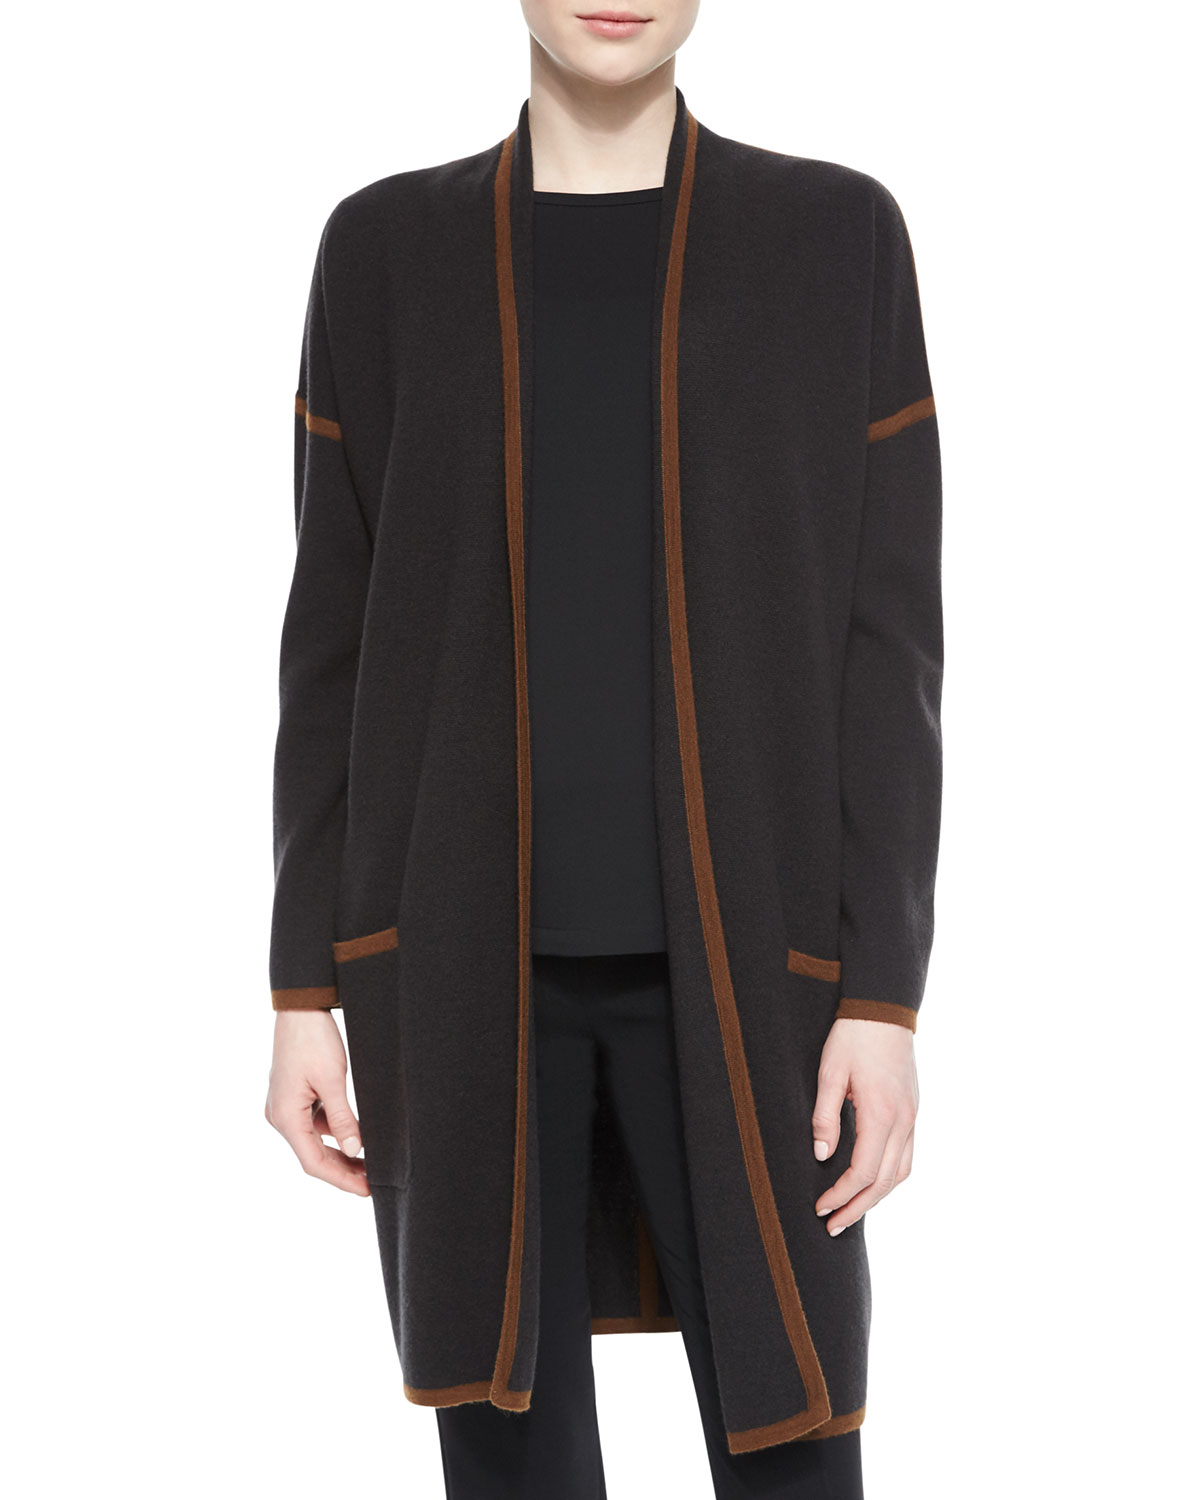 Max mara Cashmere-blend Contrast Trimmed Wrap Cardigan in Brown | Lyst